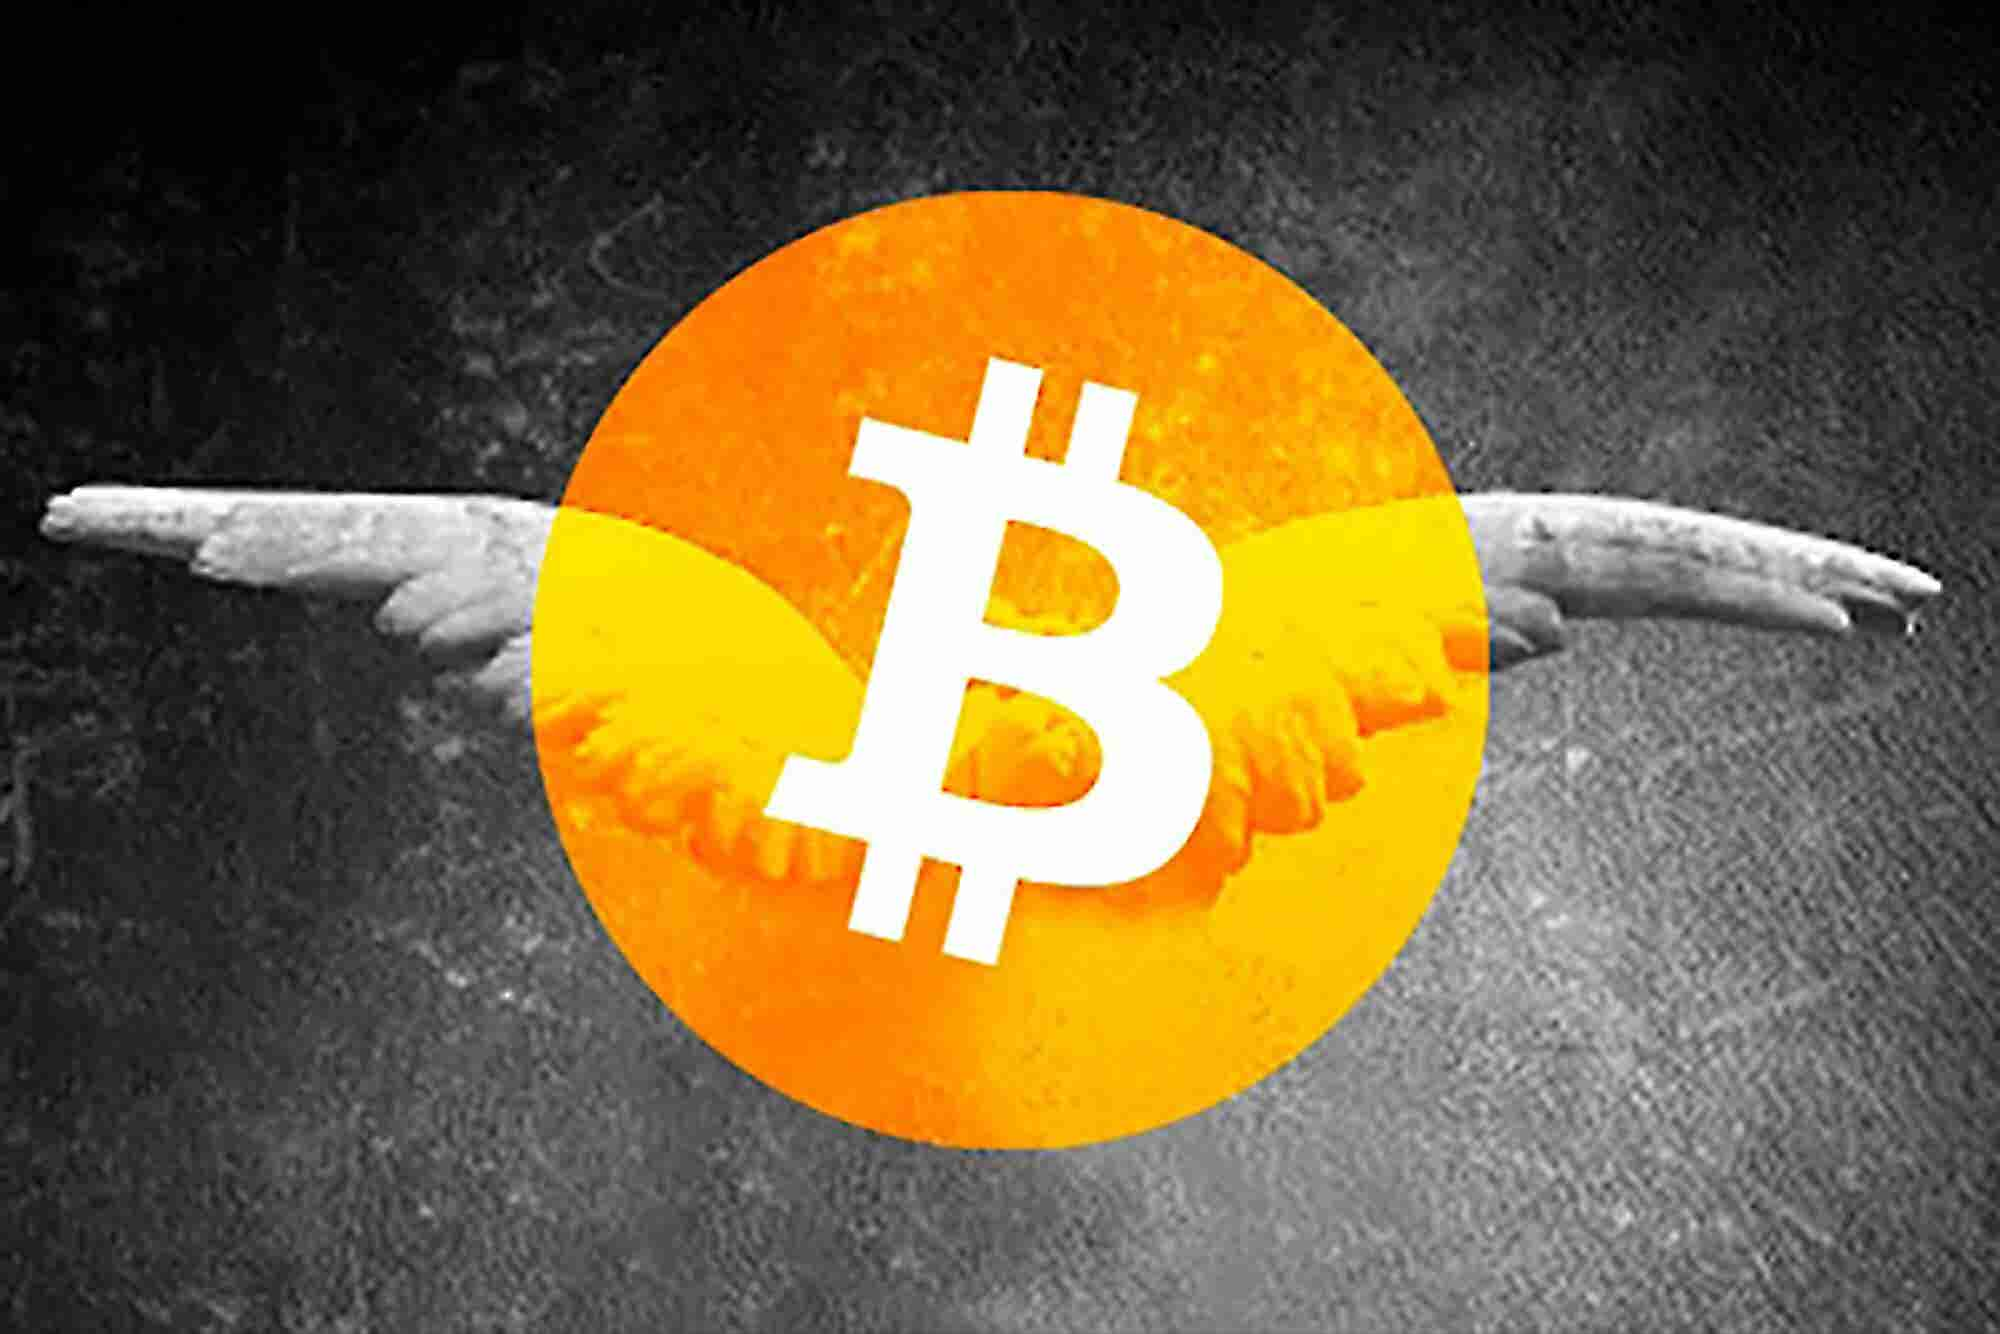 Angel Investors Form Group to Fund Bitcoin Startups